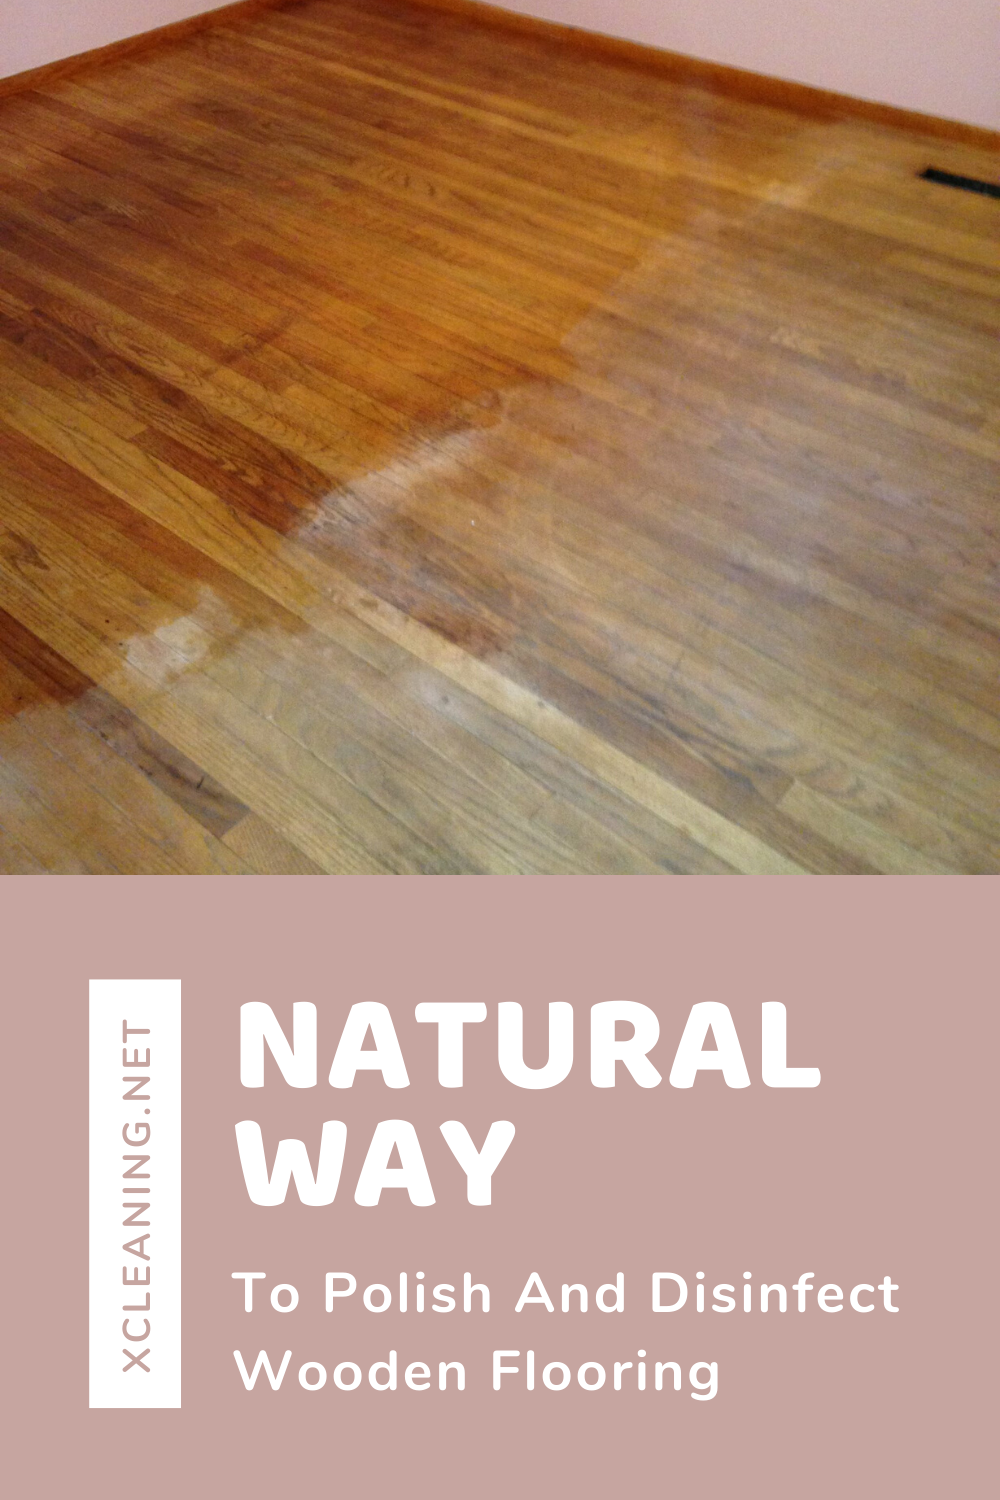 Natural Way To Polish And Disinfect Wooden Flooring